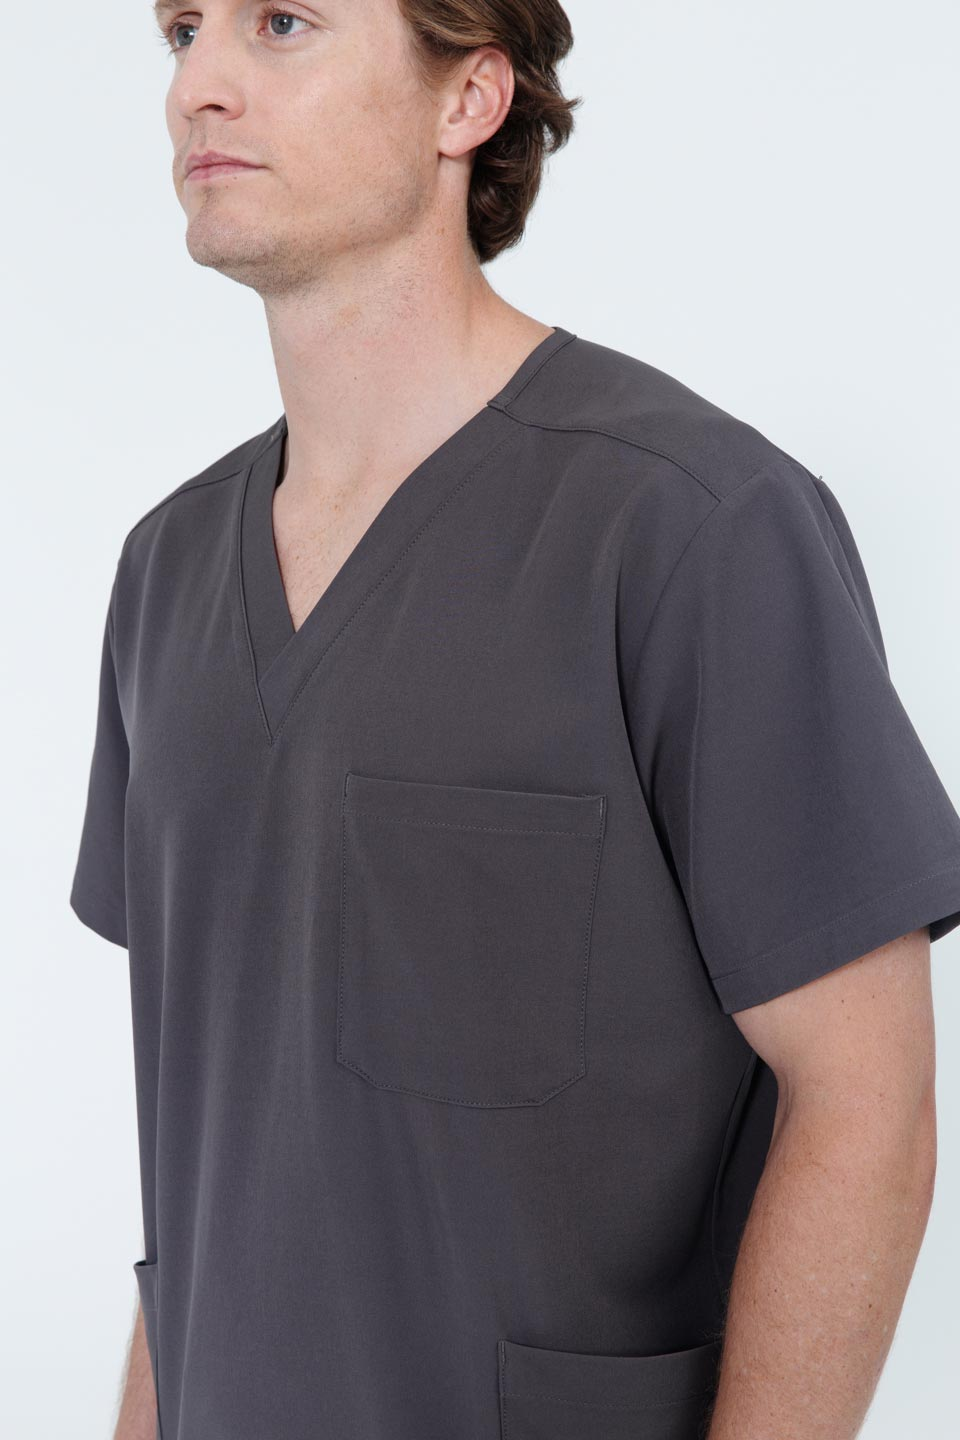 Kalea - Mens Utopia Scrub Top - Gray